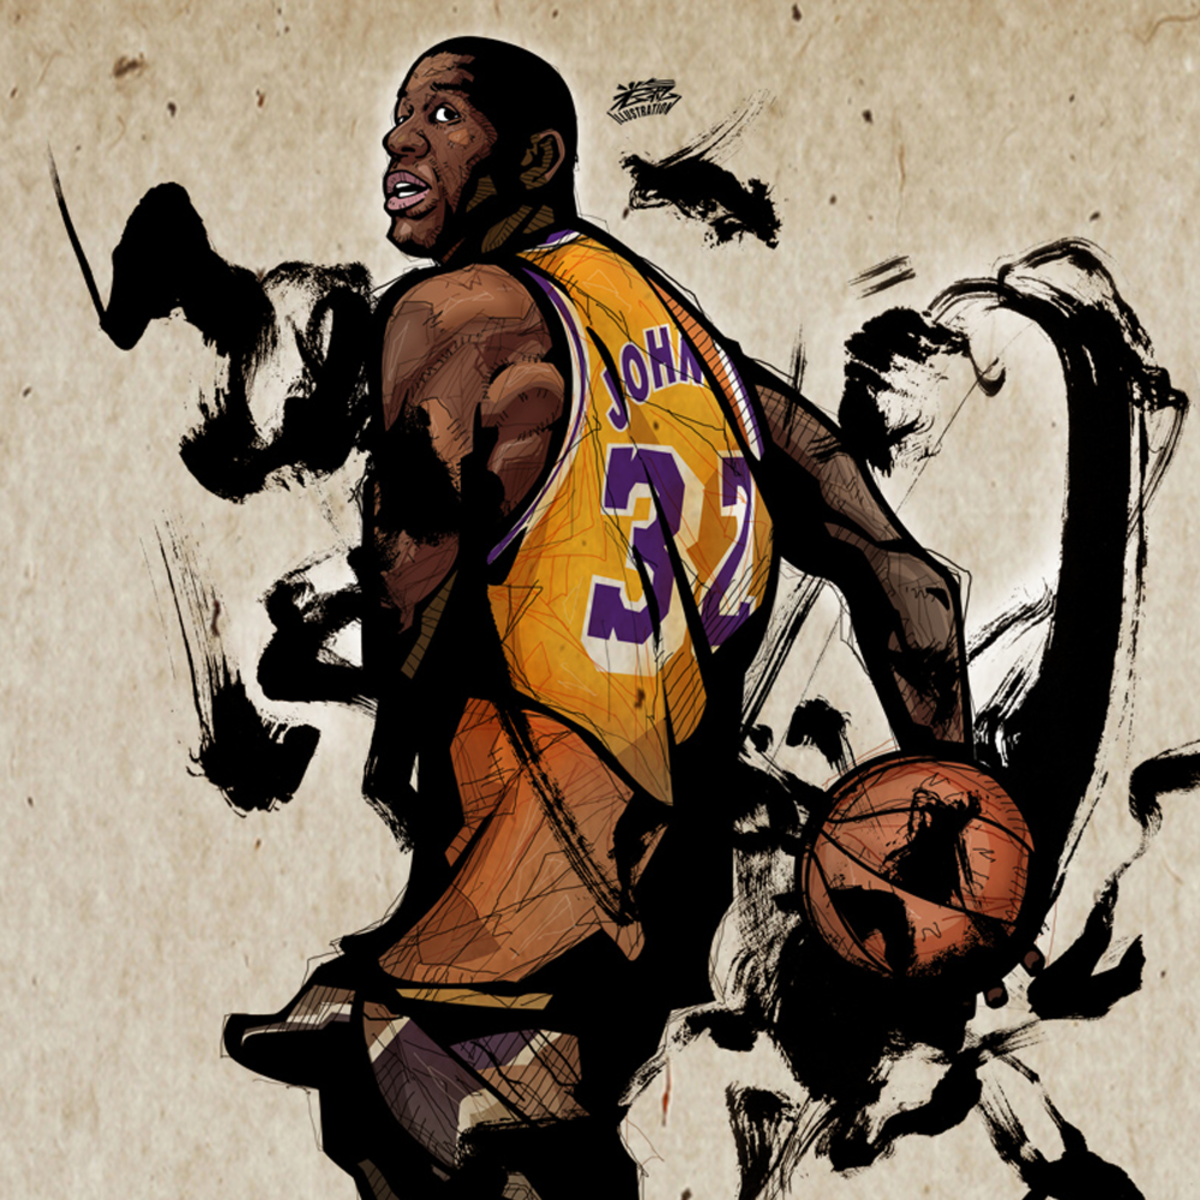 A fan-art illustrating Magic Johnson's infamous pass.